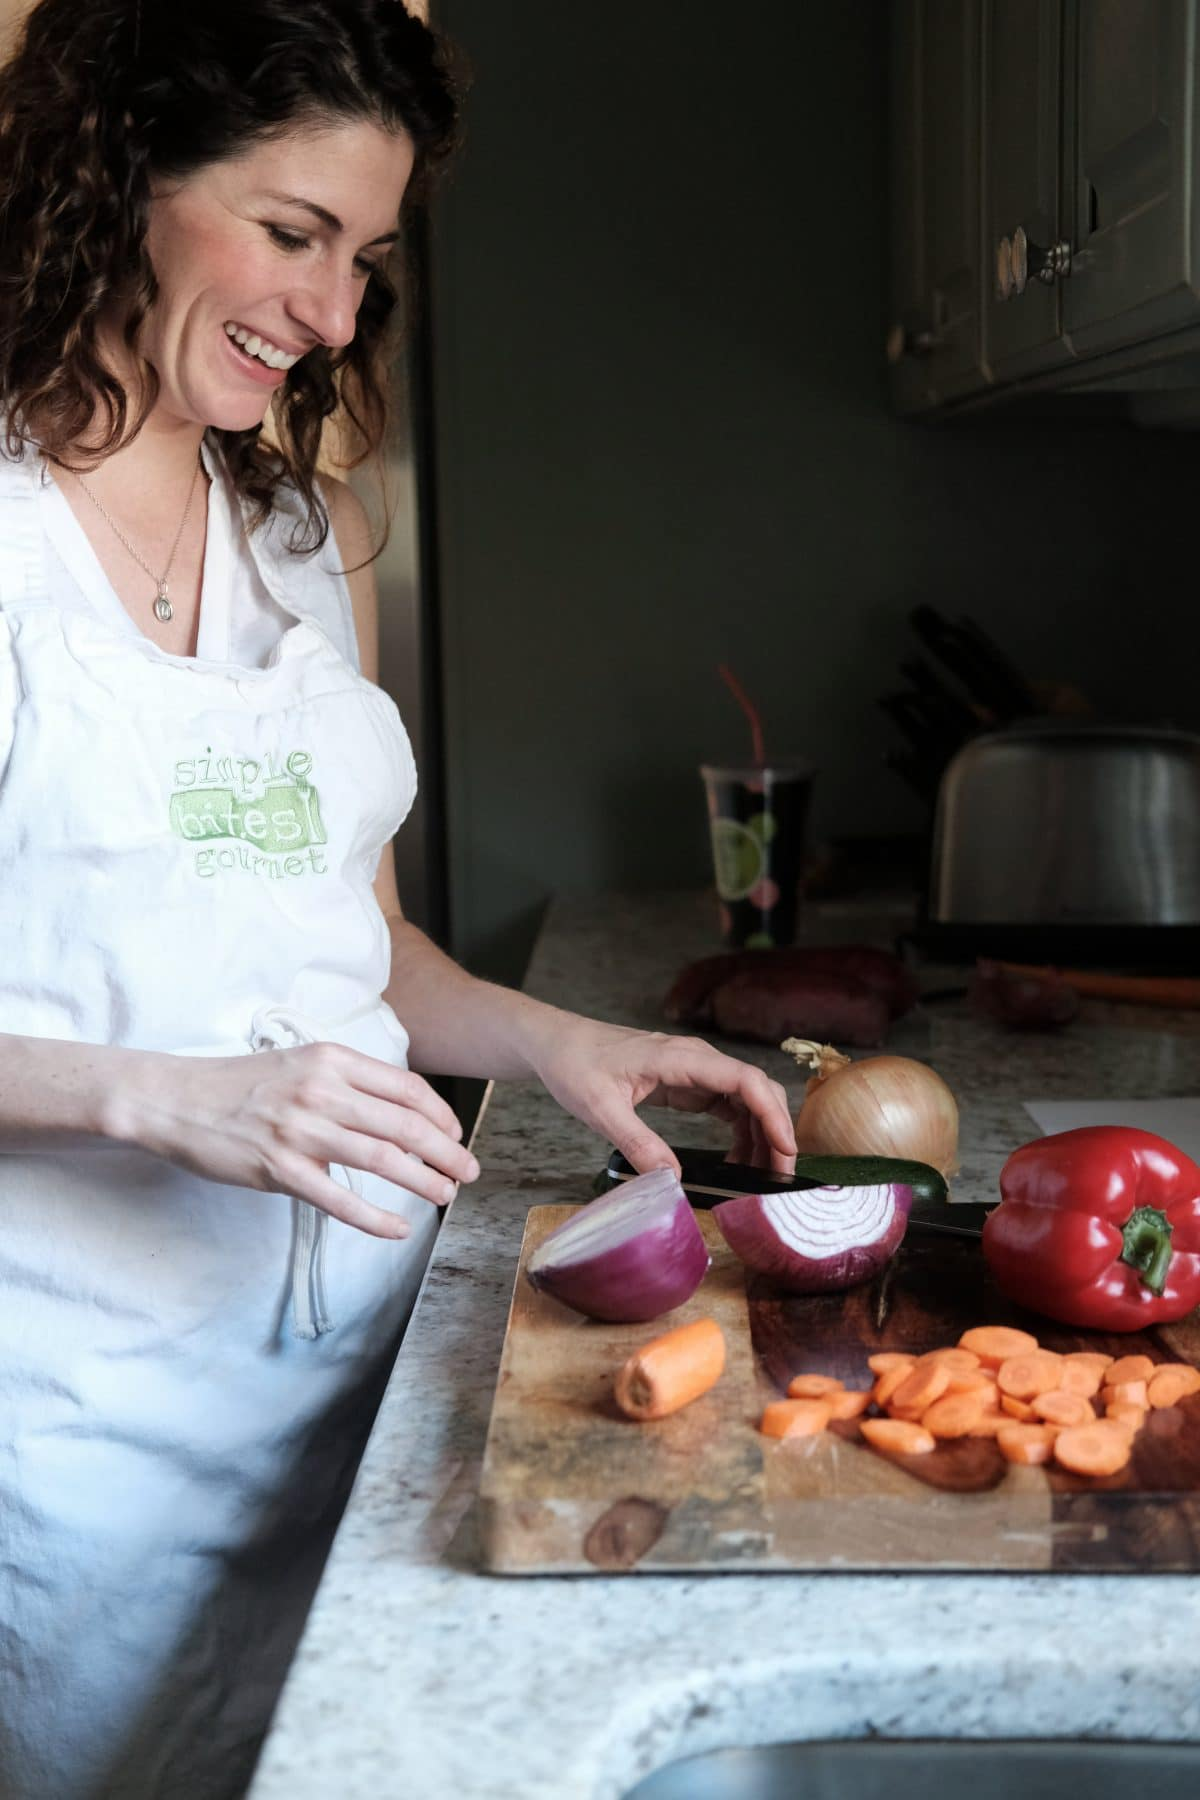 Erica Hopper is an elite marathoner, mom and chef. She tells the secrets of keeping a kitchen ready for healthy meals at any time.